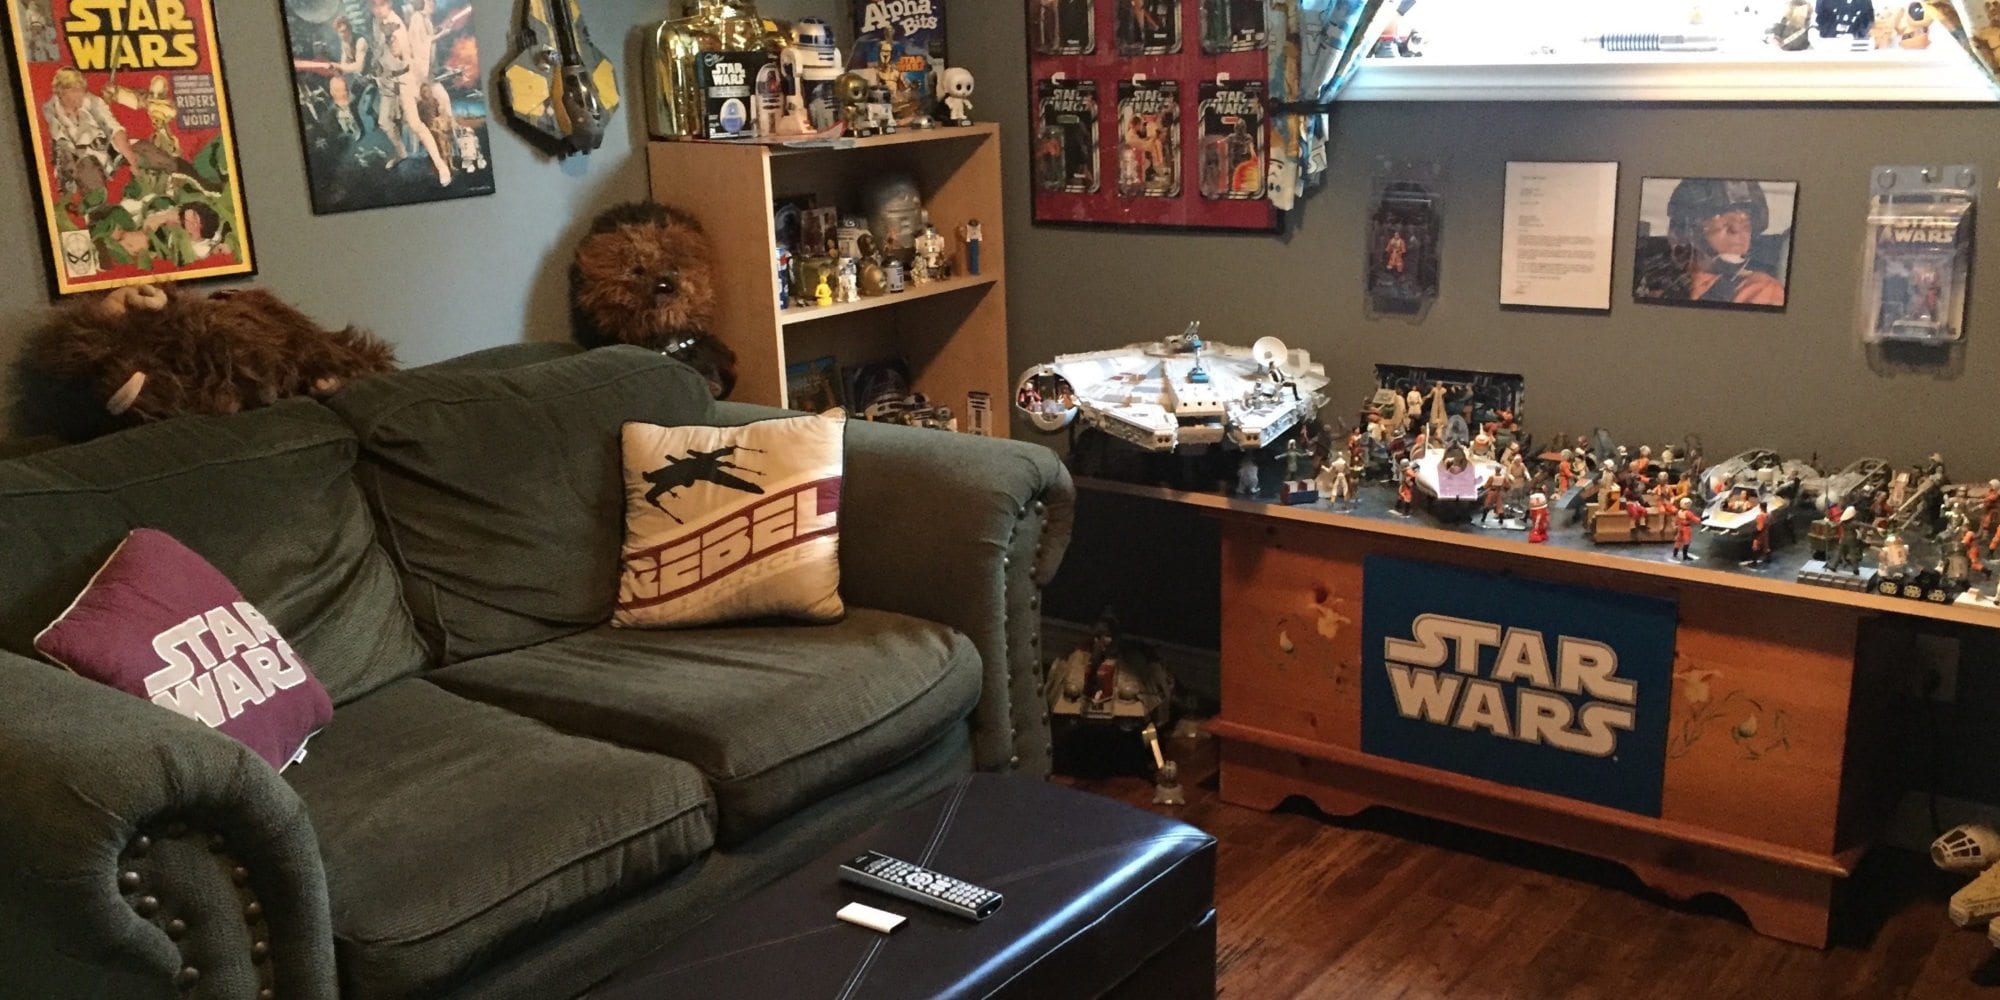 Star Wars Room, Star Wars collecting